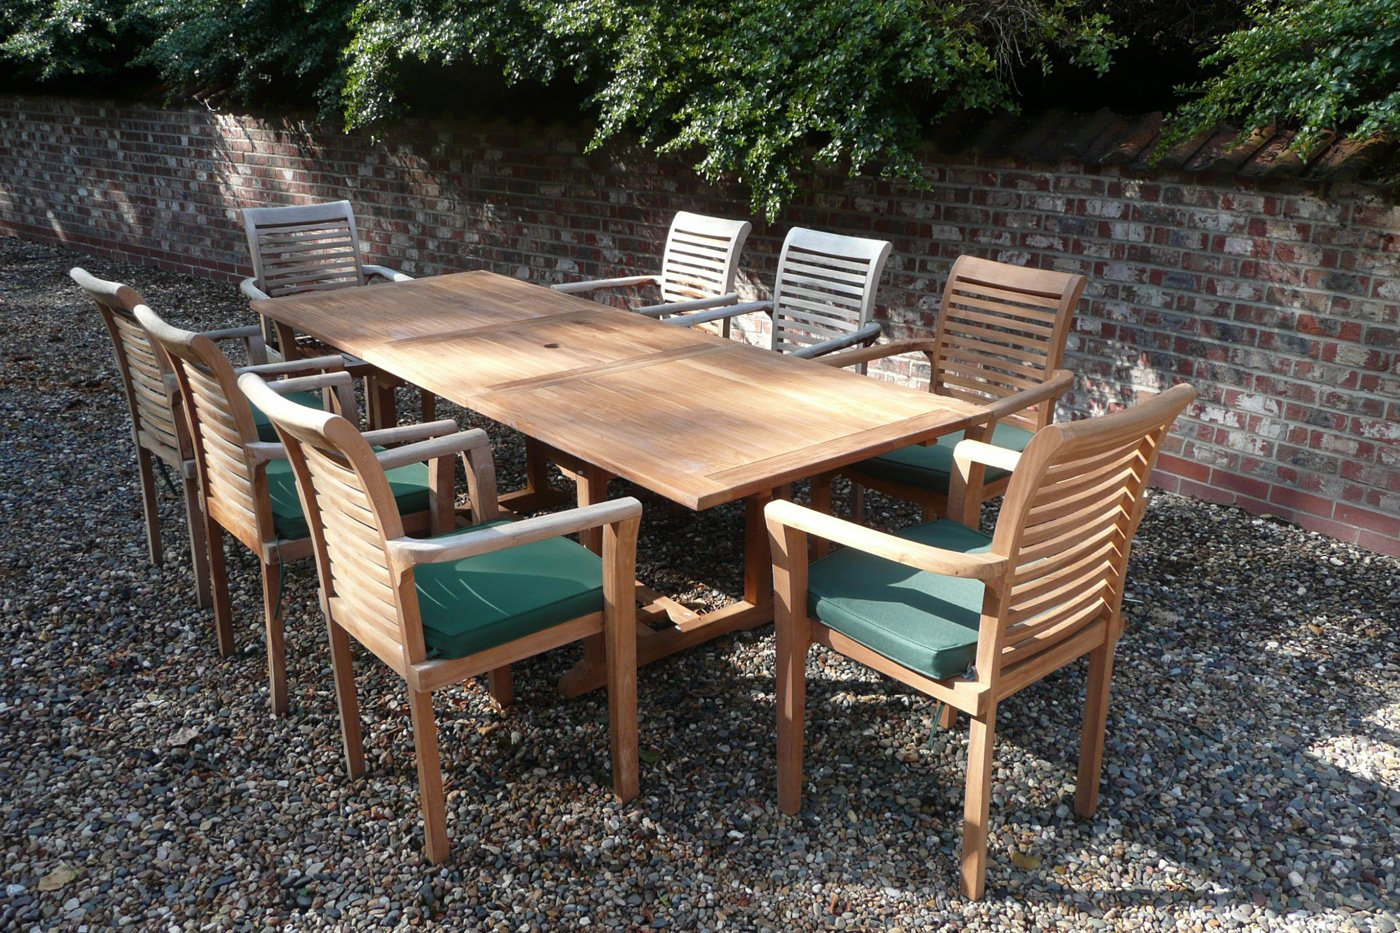 Stupendous The Harrogate 8 Seater Teak Garden Furniture Set Download Free Architecture Designs Sospemadebymaigaardcom